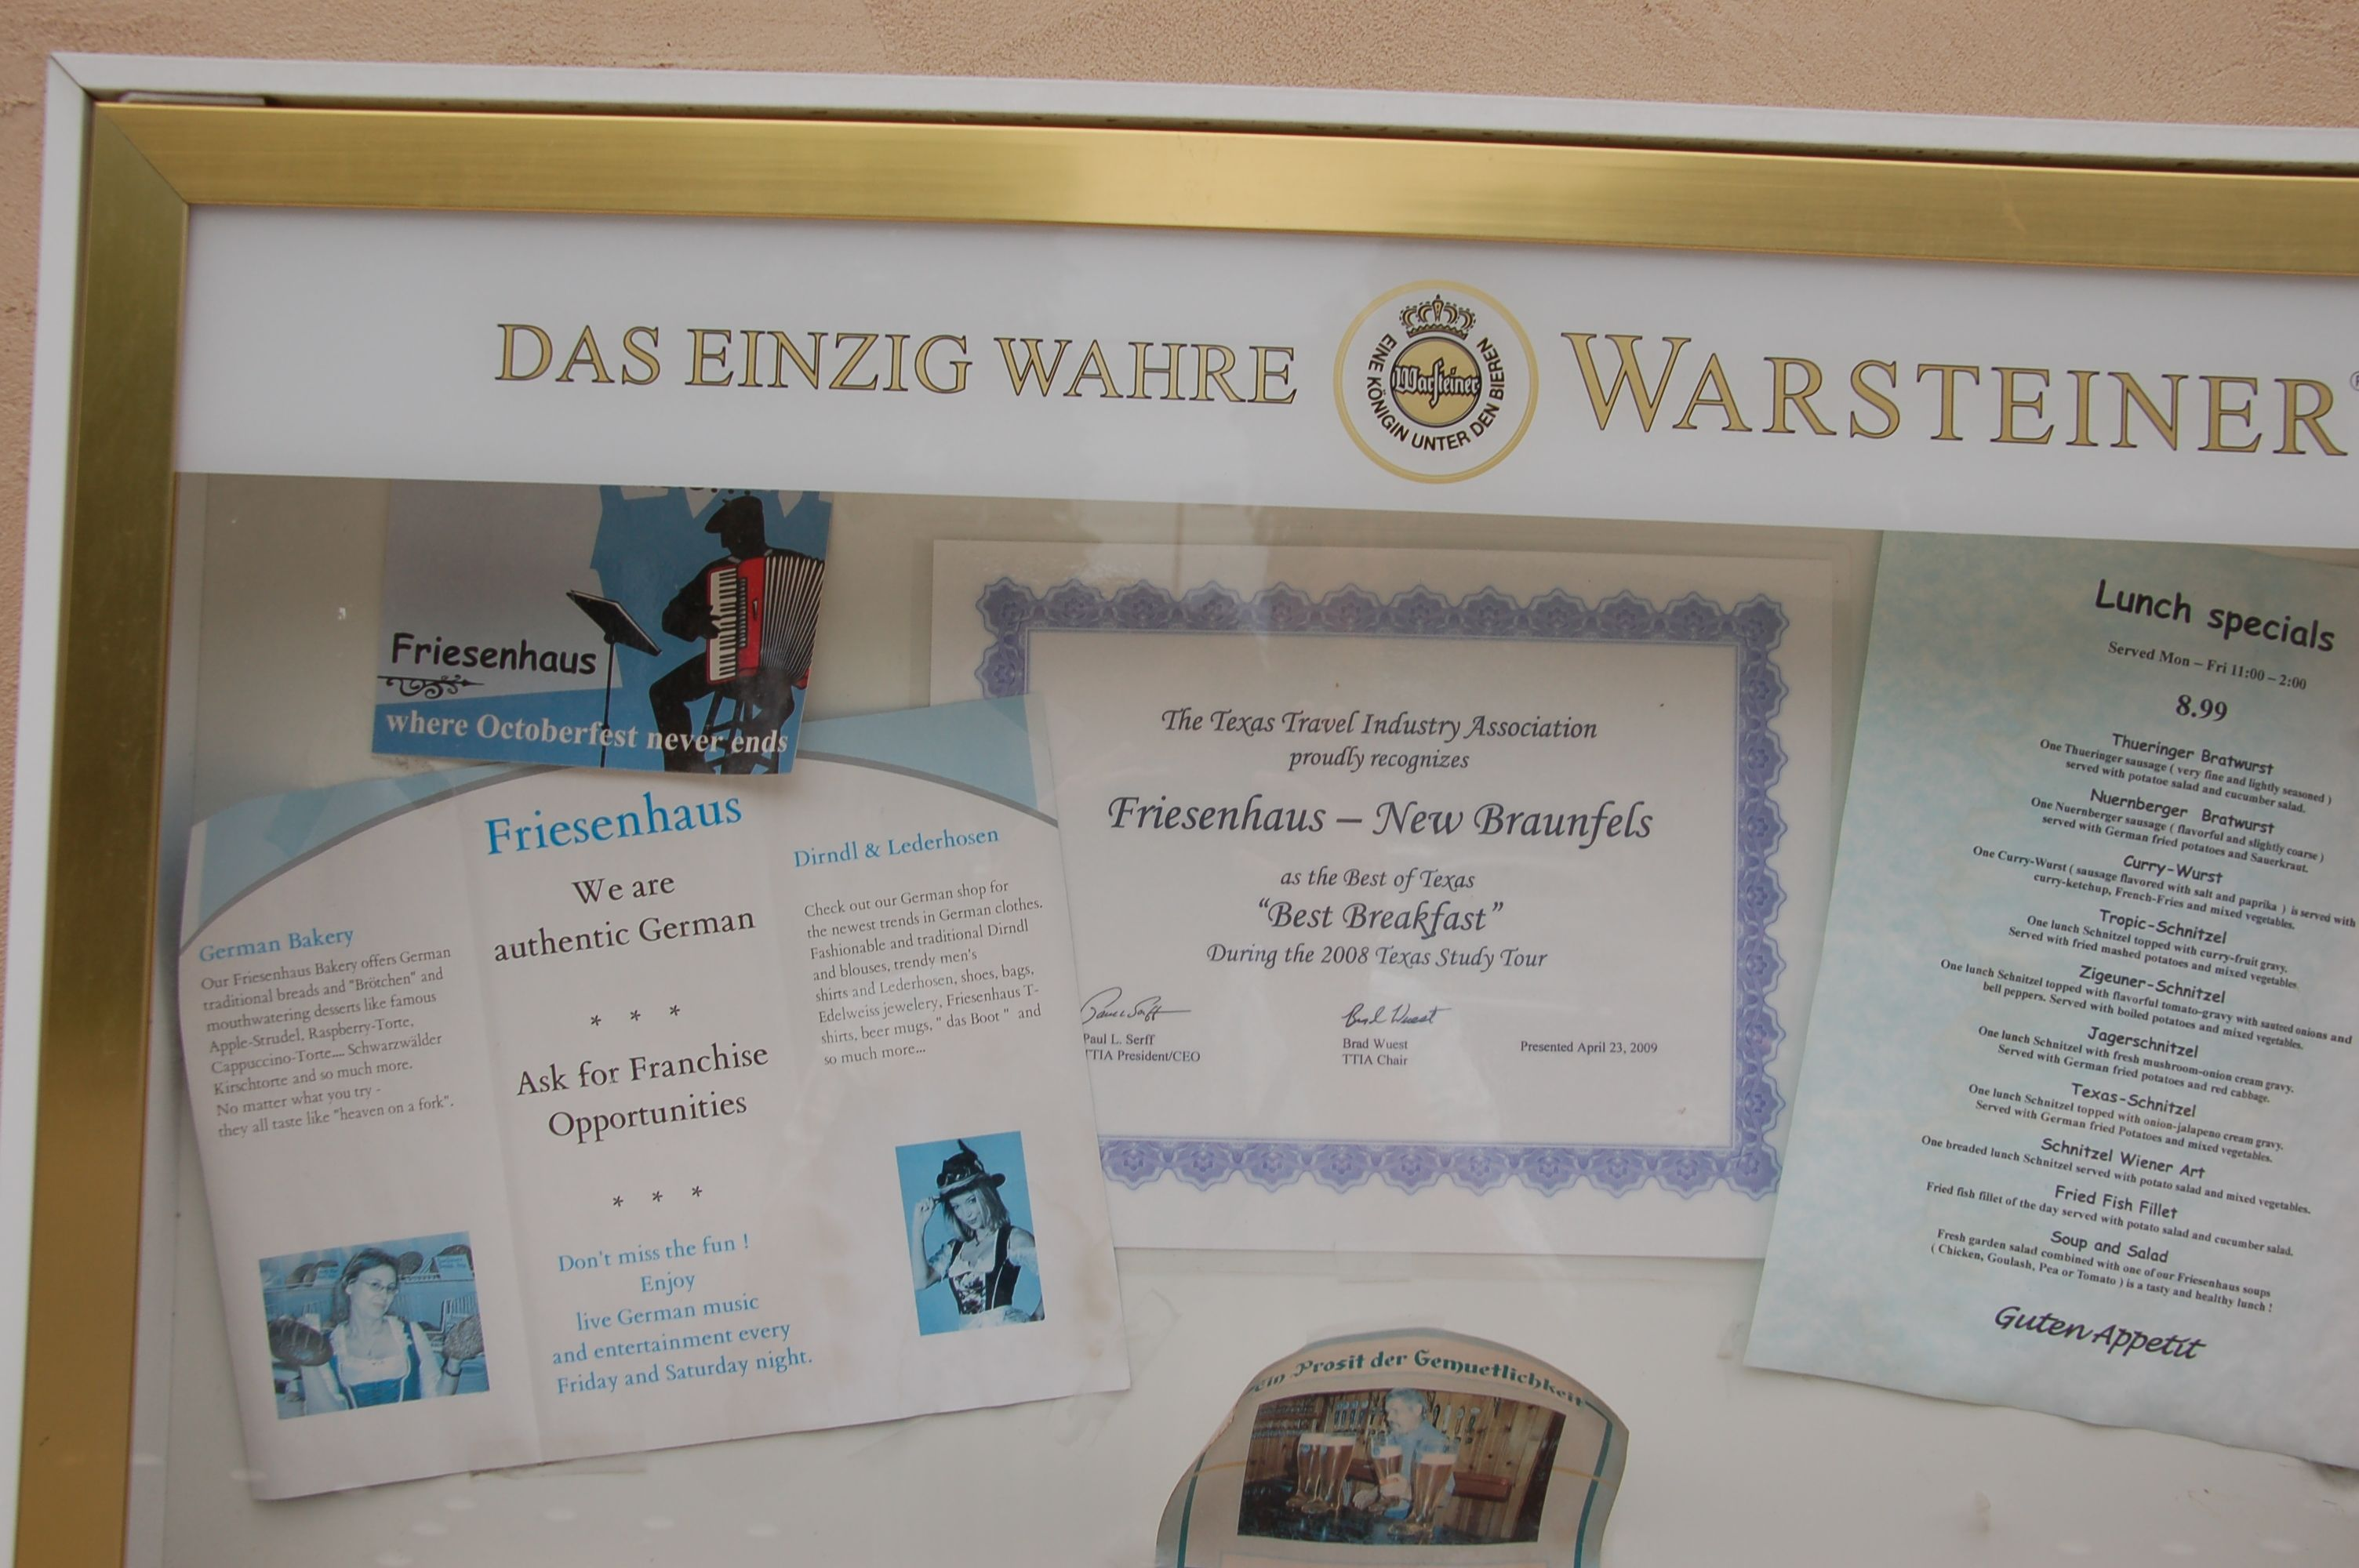 Authentic German? Ask for franchise opportunities...